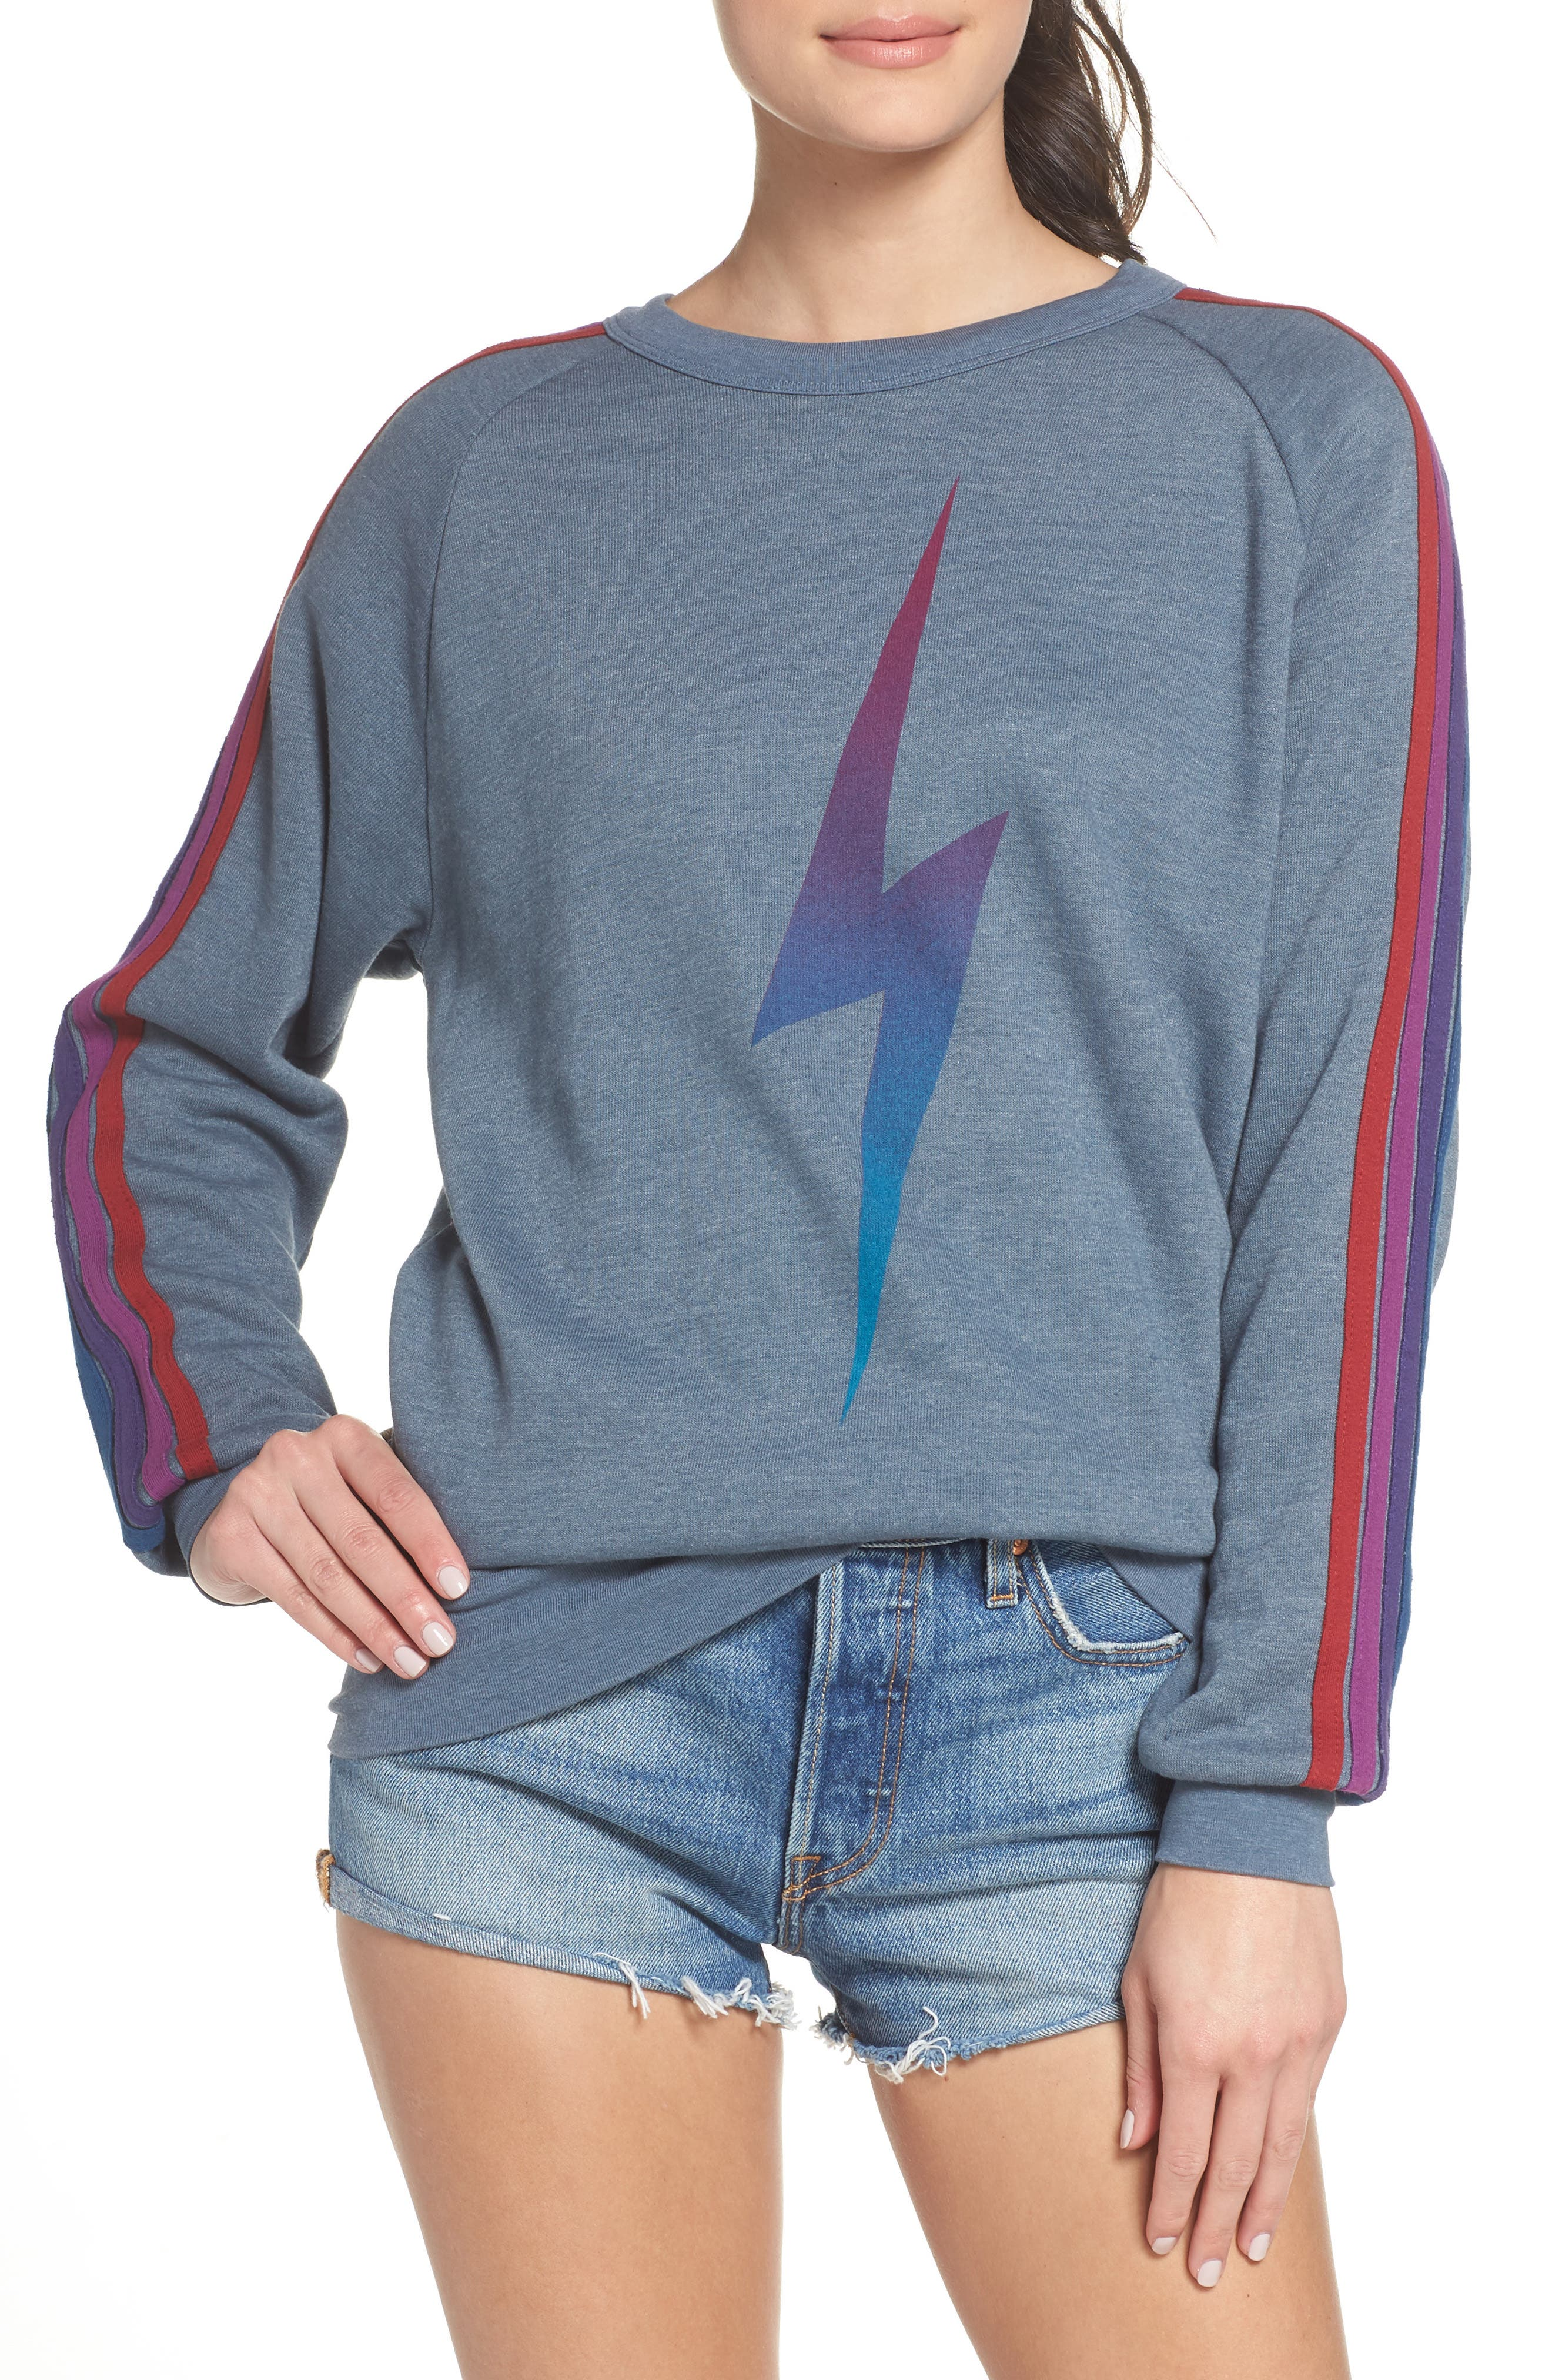 Bolt Fade Sweatshirt,                         Main,                         color, SLATE/ PURPLE